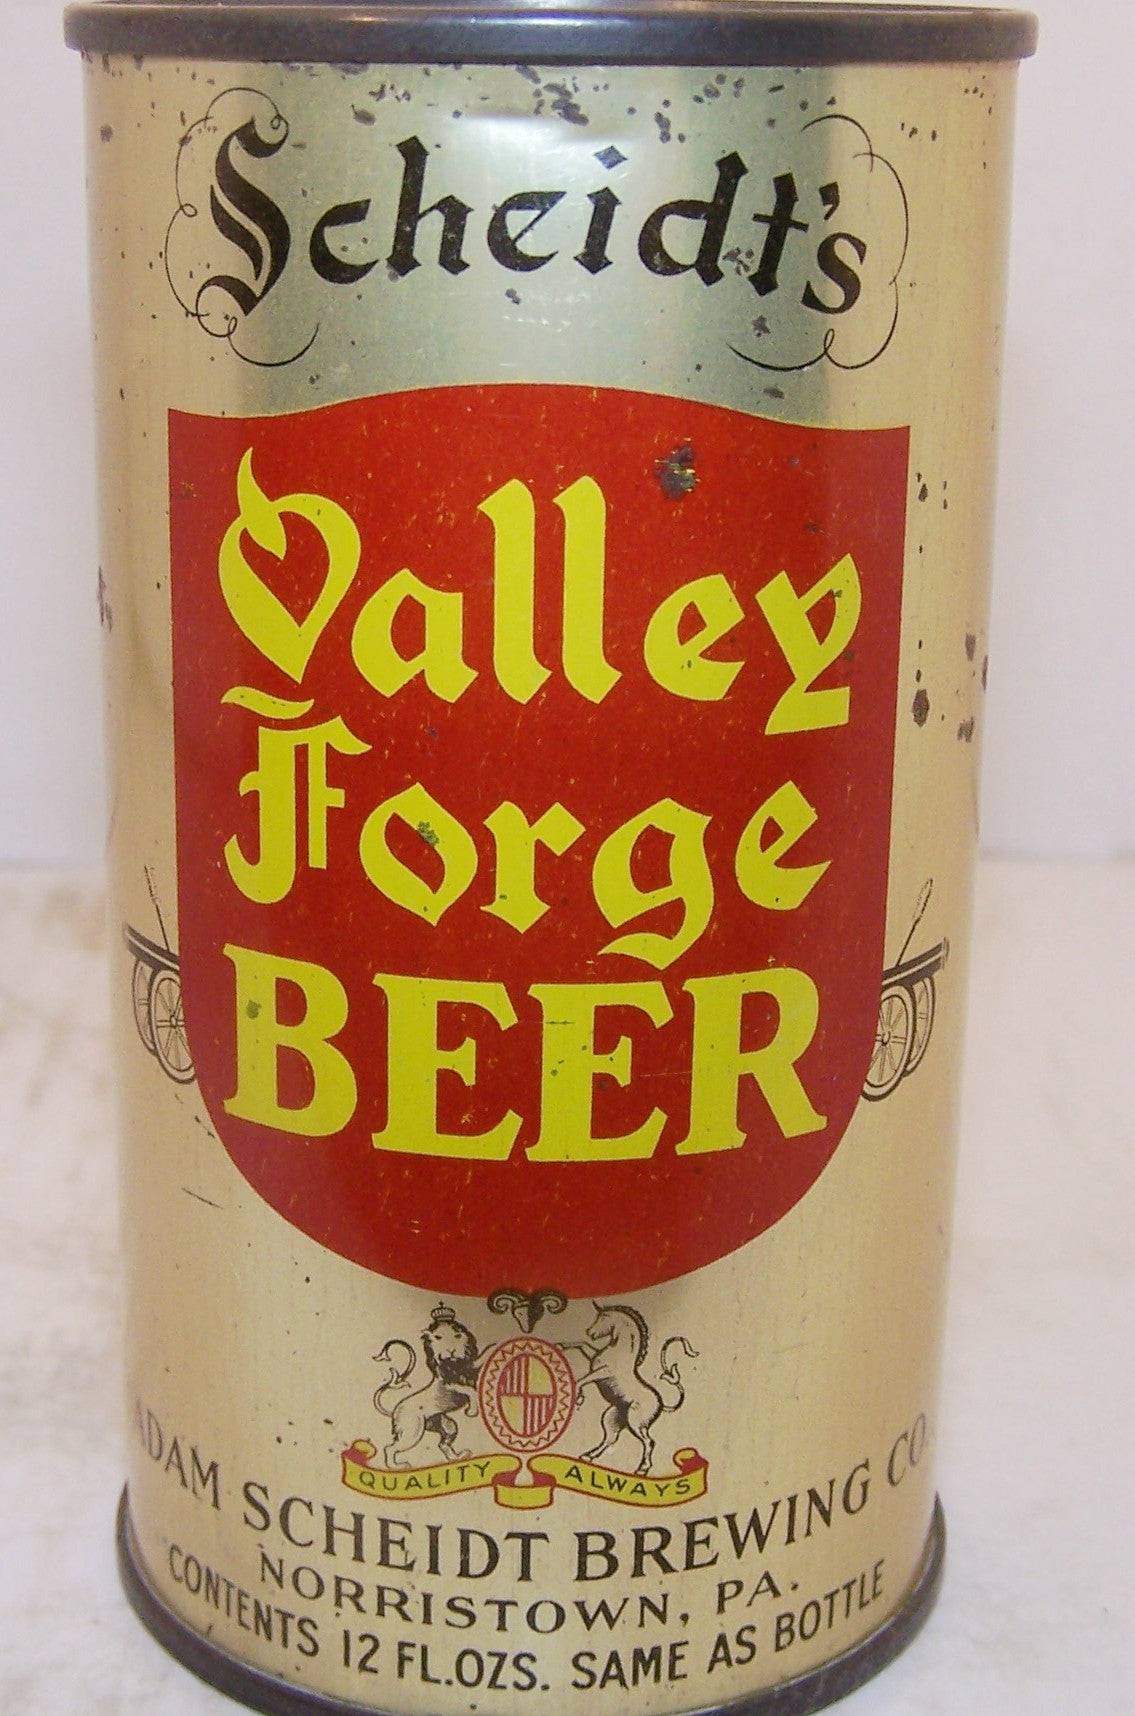 Scheidt's Valley Forge Beer, Lilek page # 832, Grade 1/1-sold 4/5/17